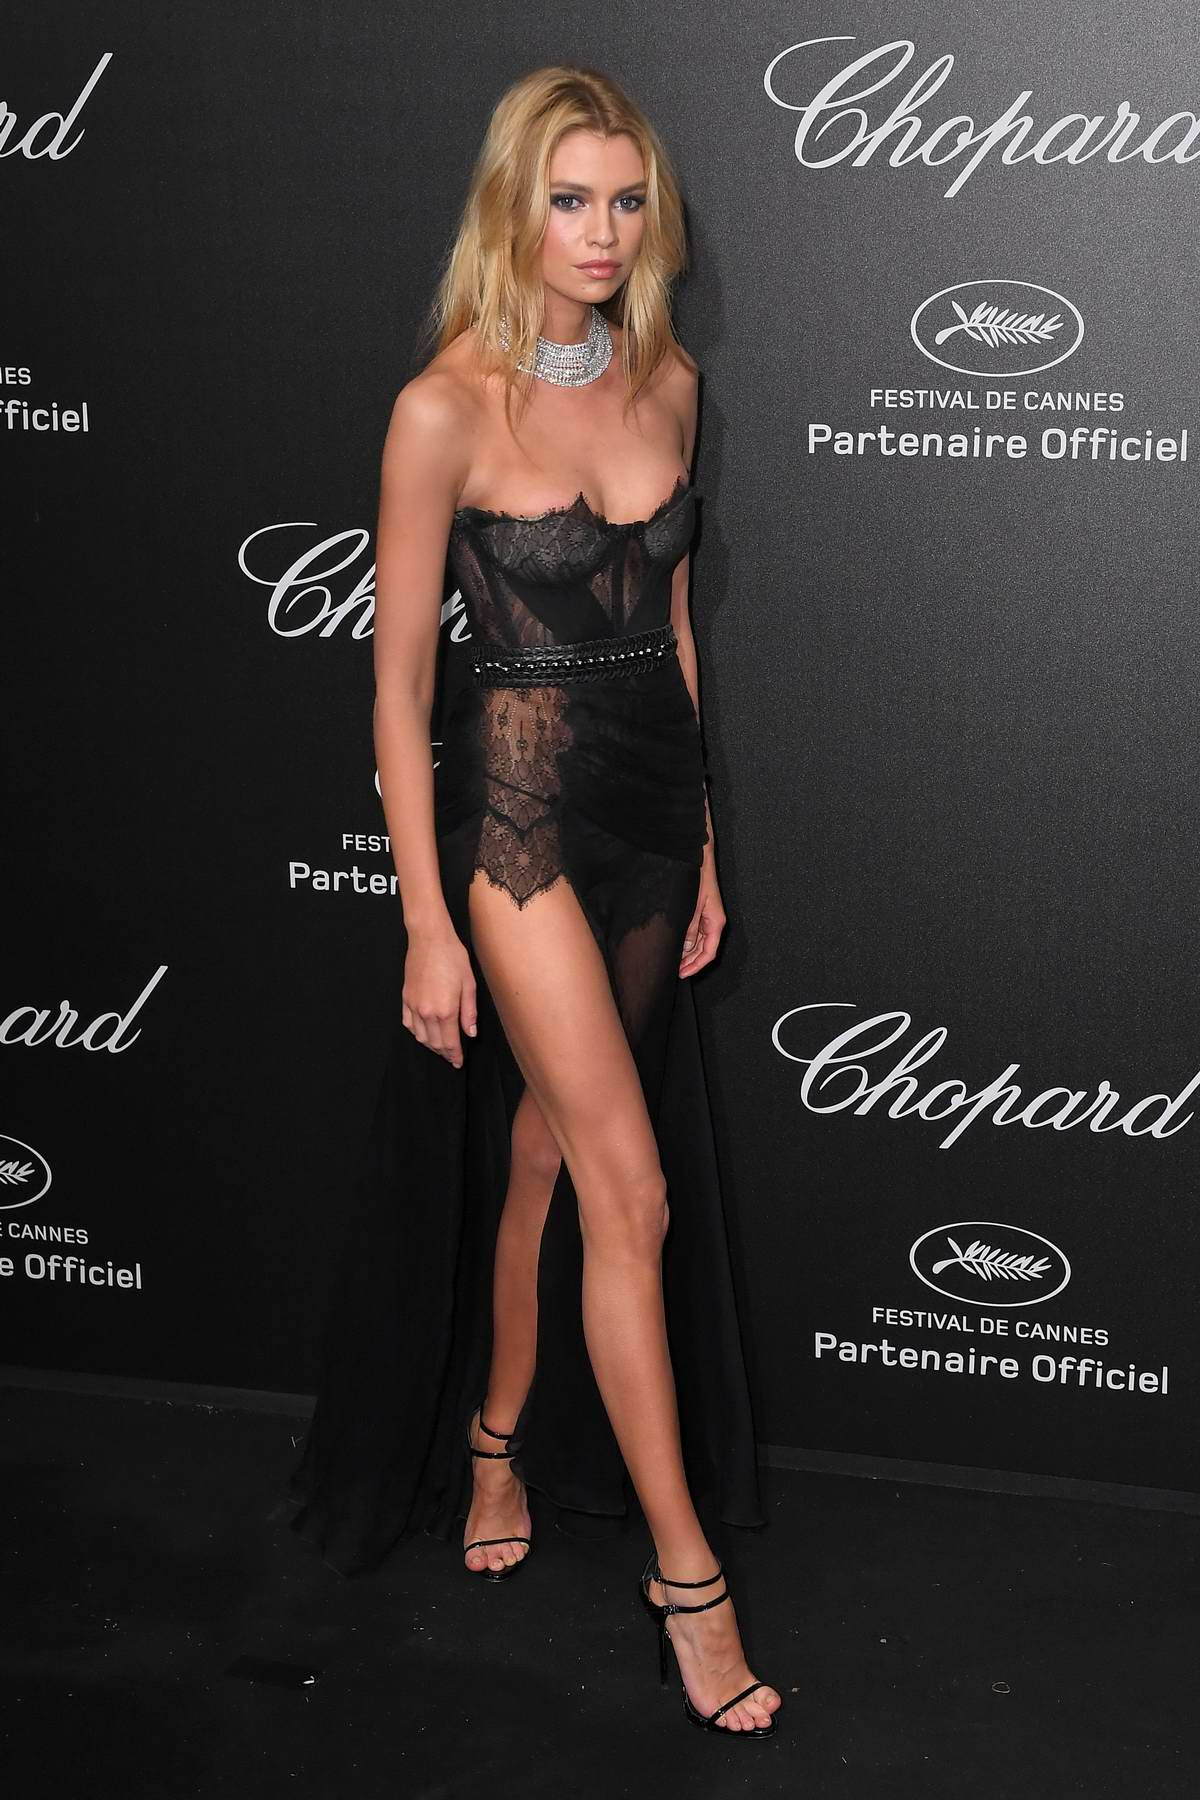 Stella Maxwell attends Secret Chopard party during the 71st Cannes Film Festival in Cannes, France